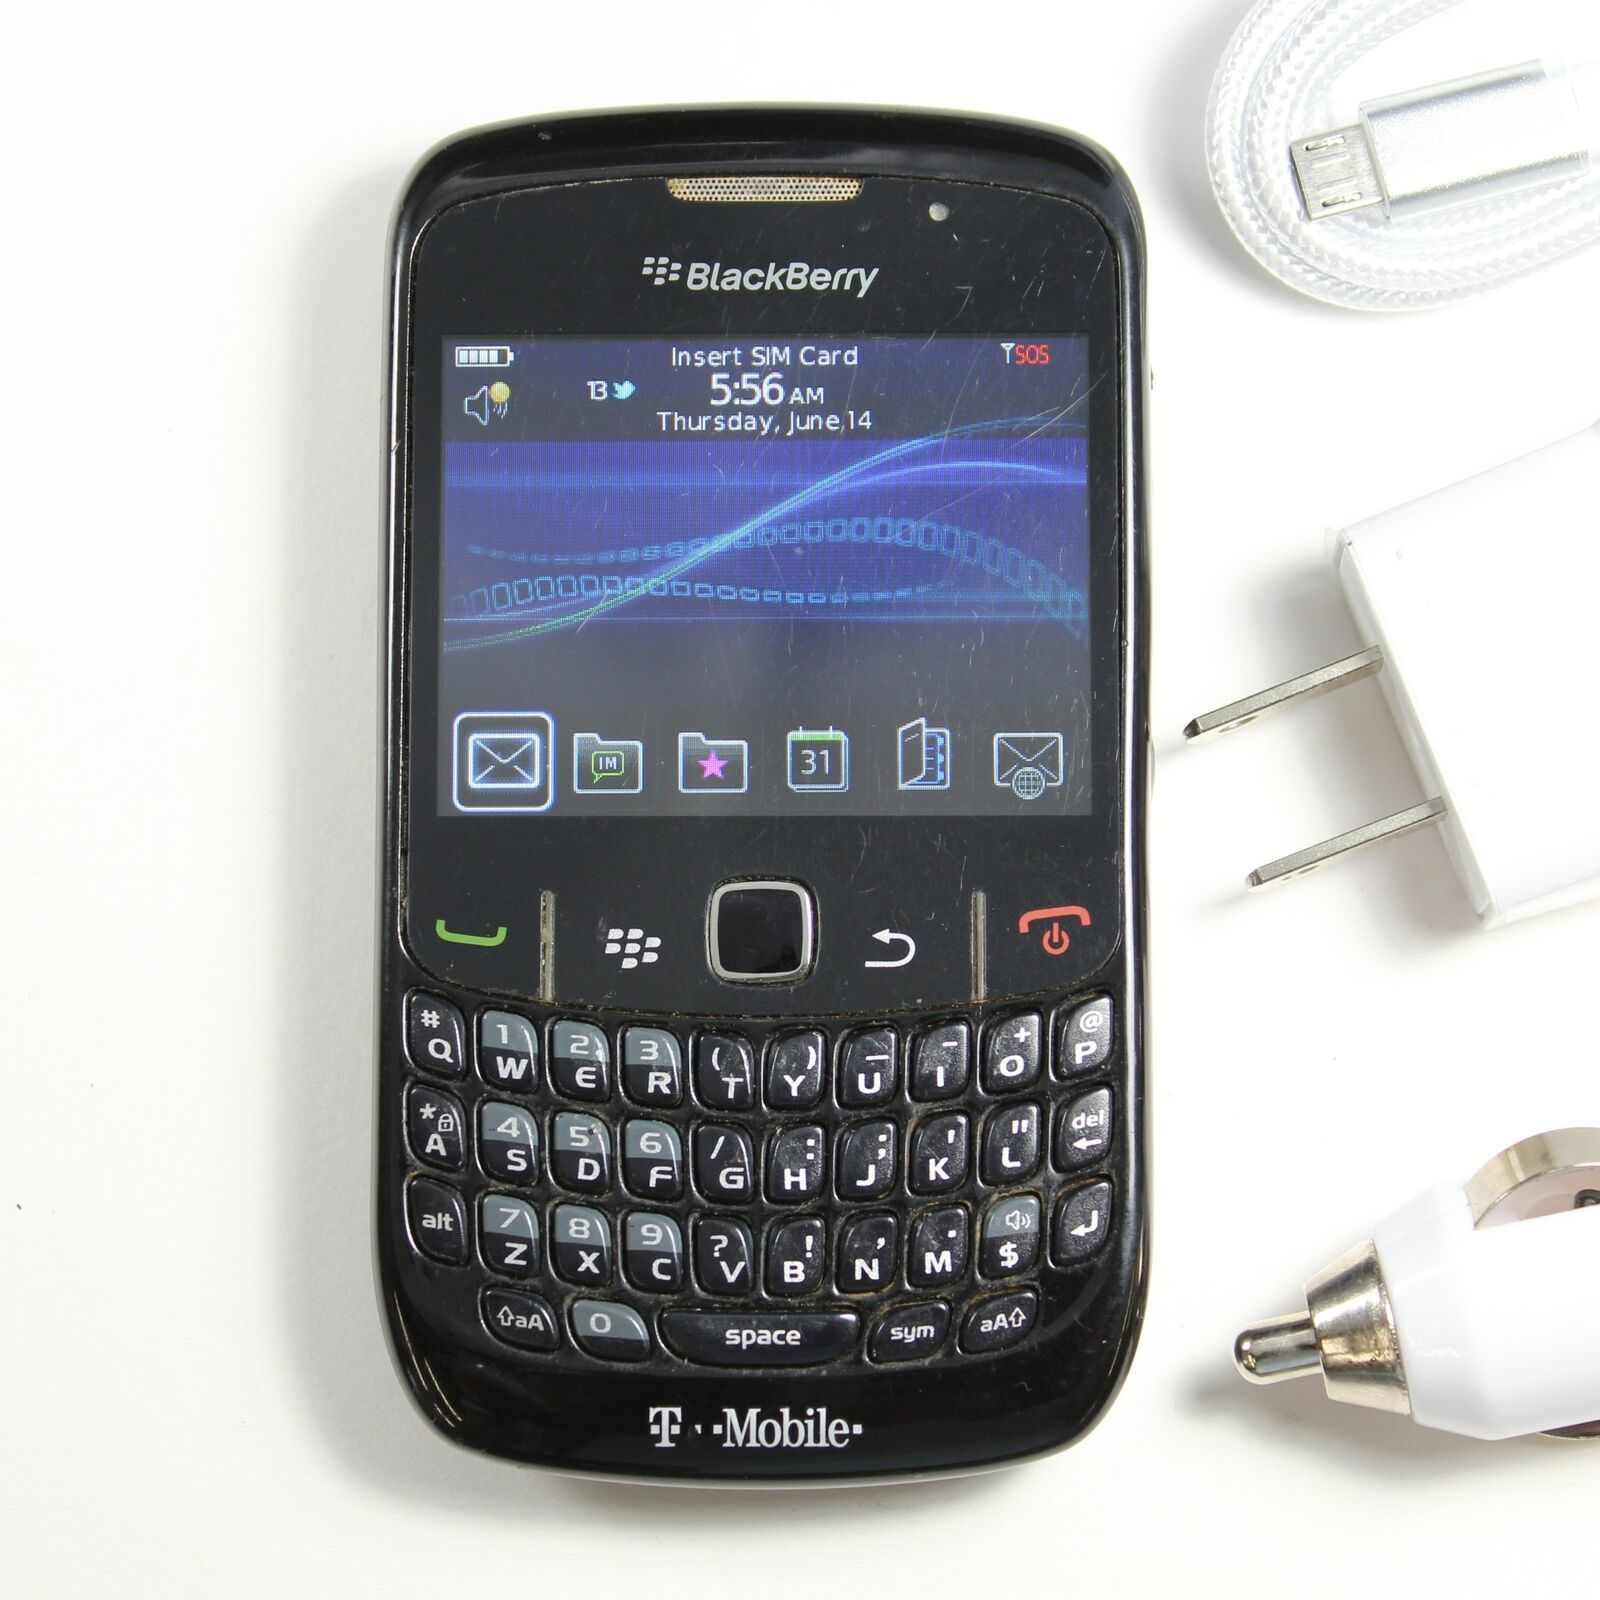 Blackberry Curve 8520 (T-Mobile) QWERTY Phone - GPS, WIFI DATA, 2MP Camera